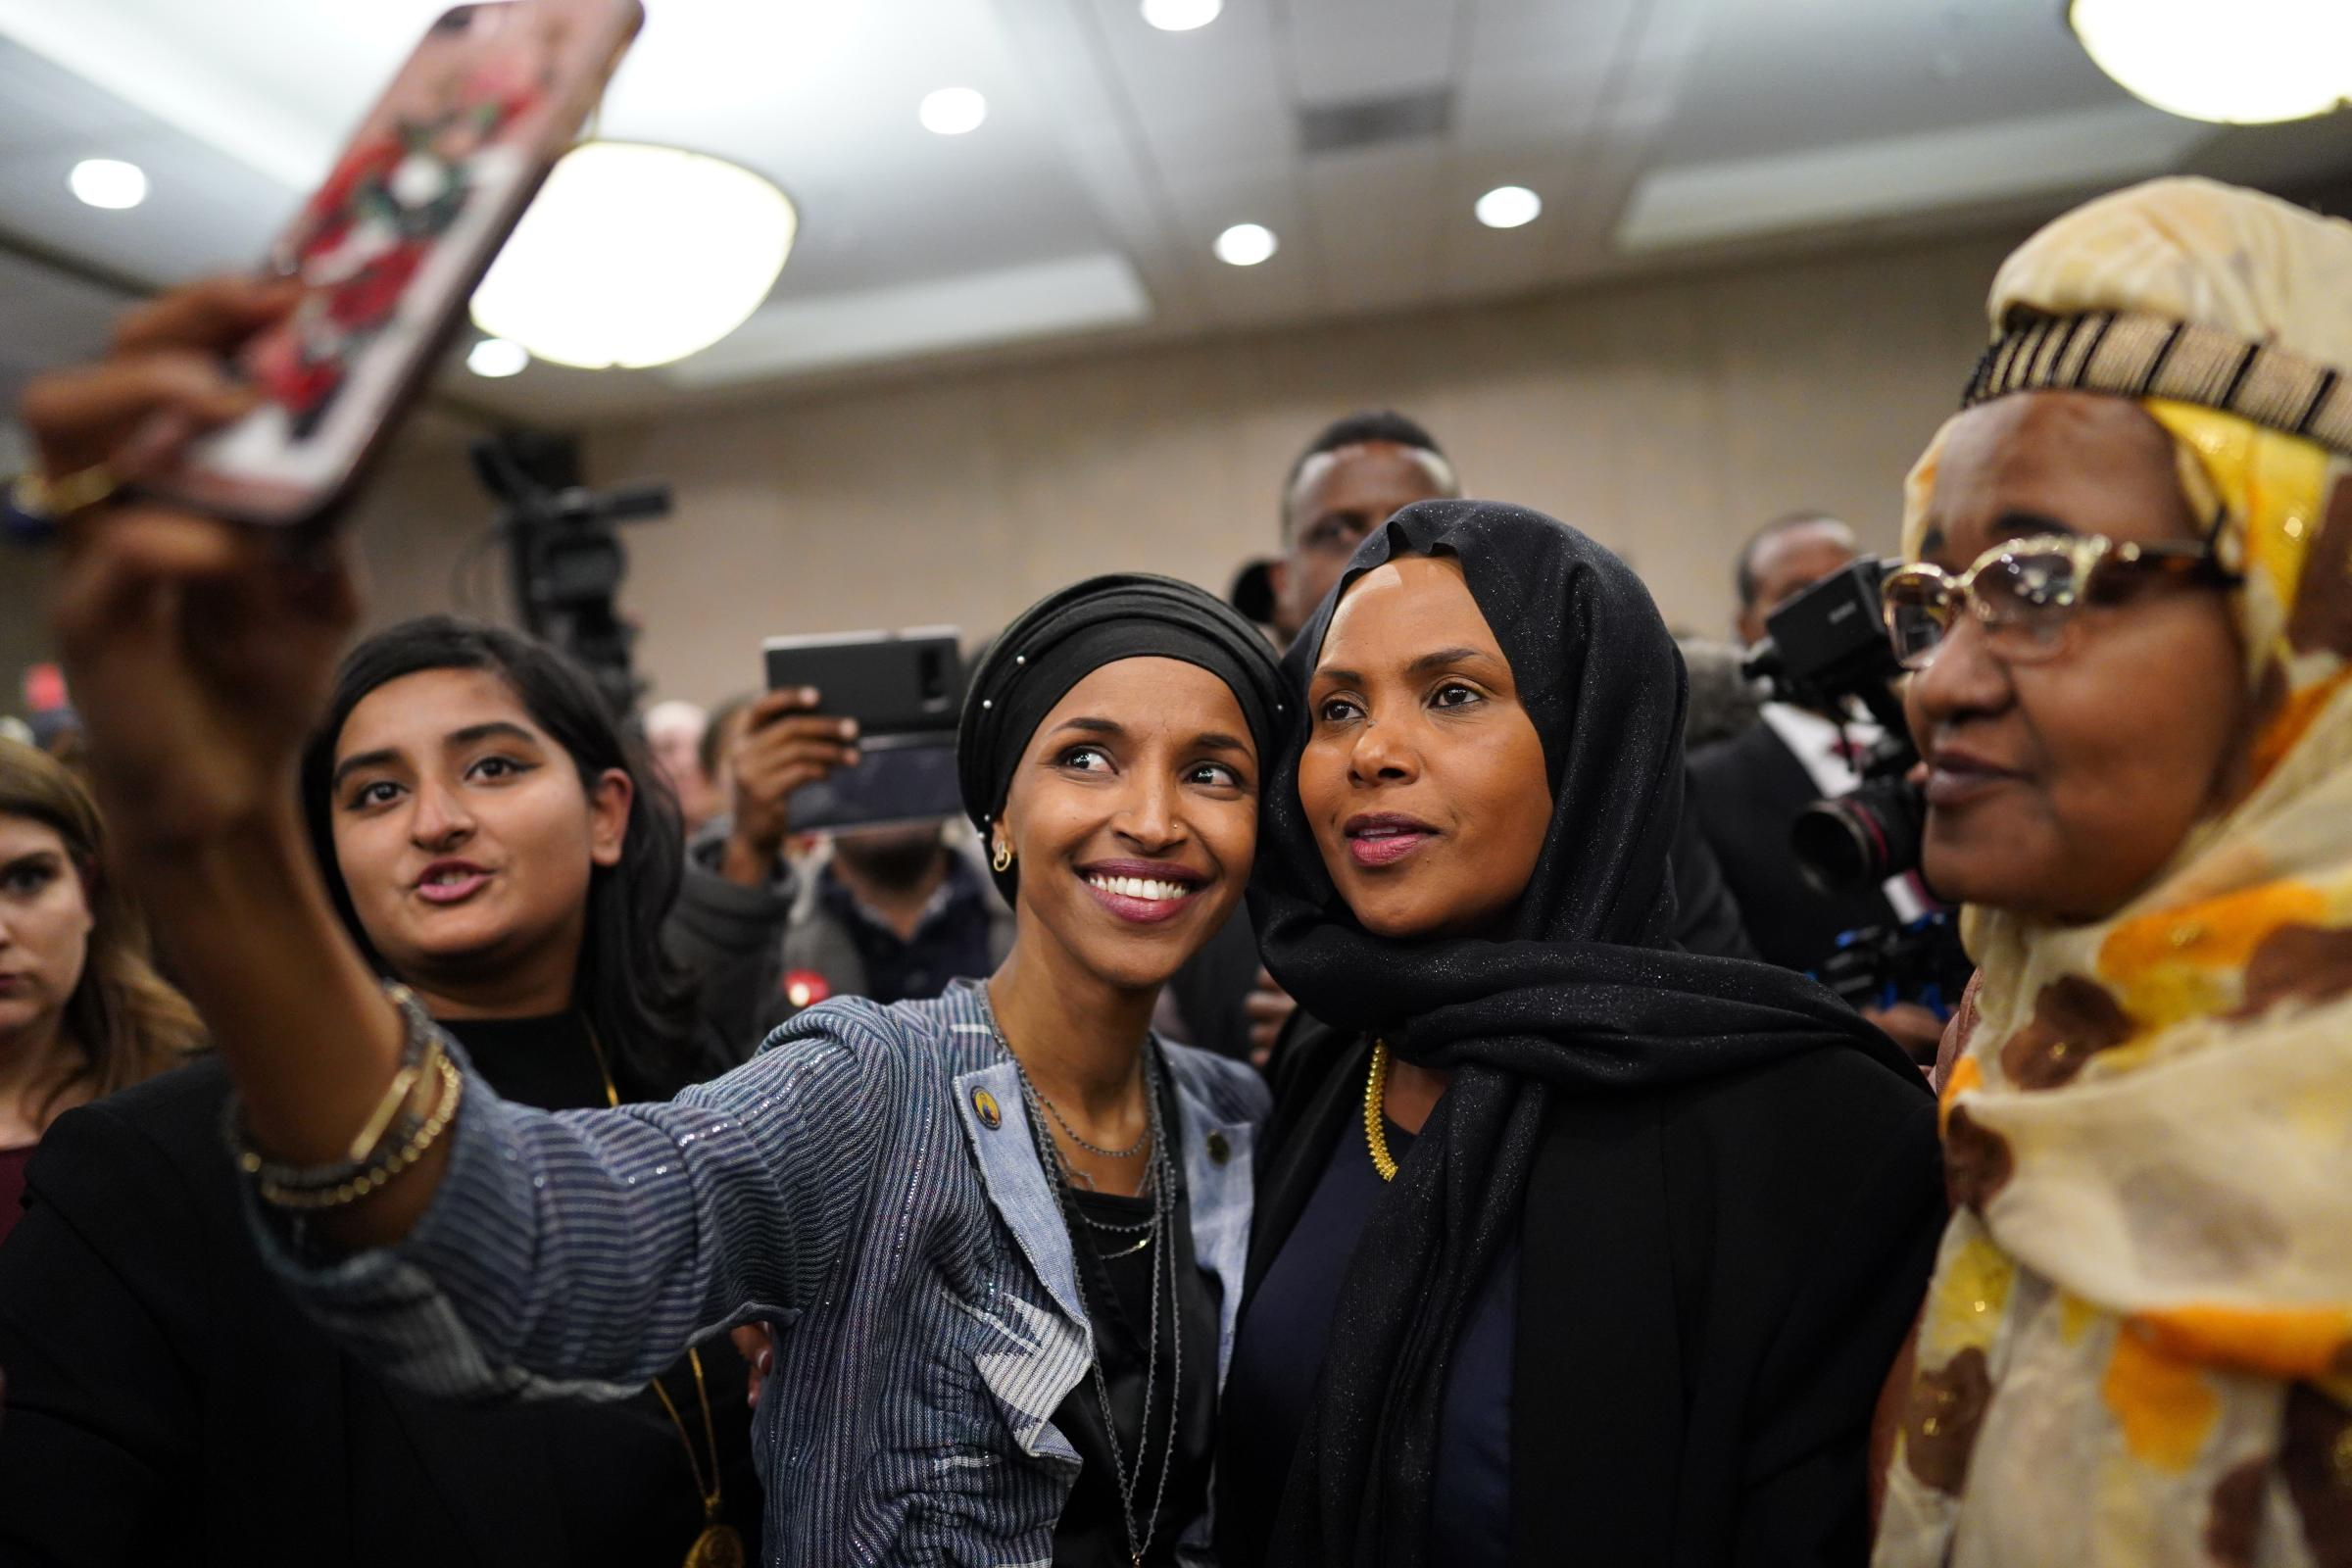 Ilhan Omar poses for selfies